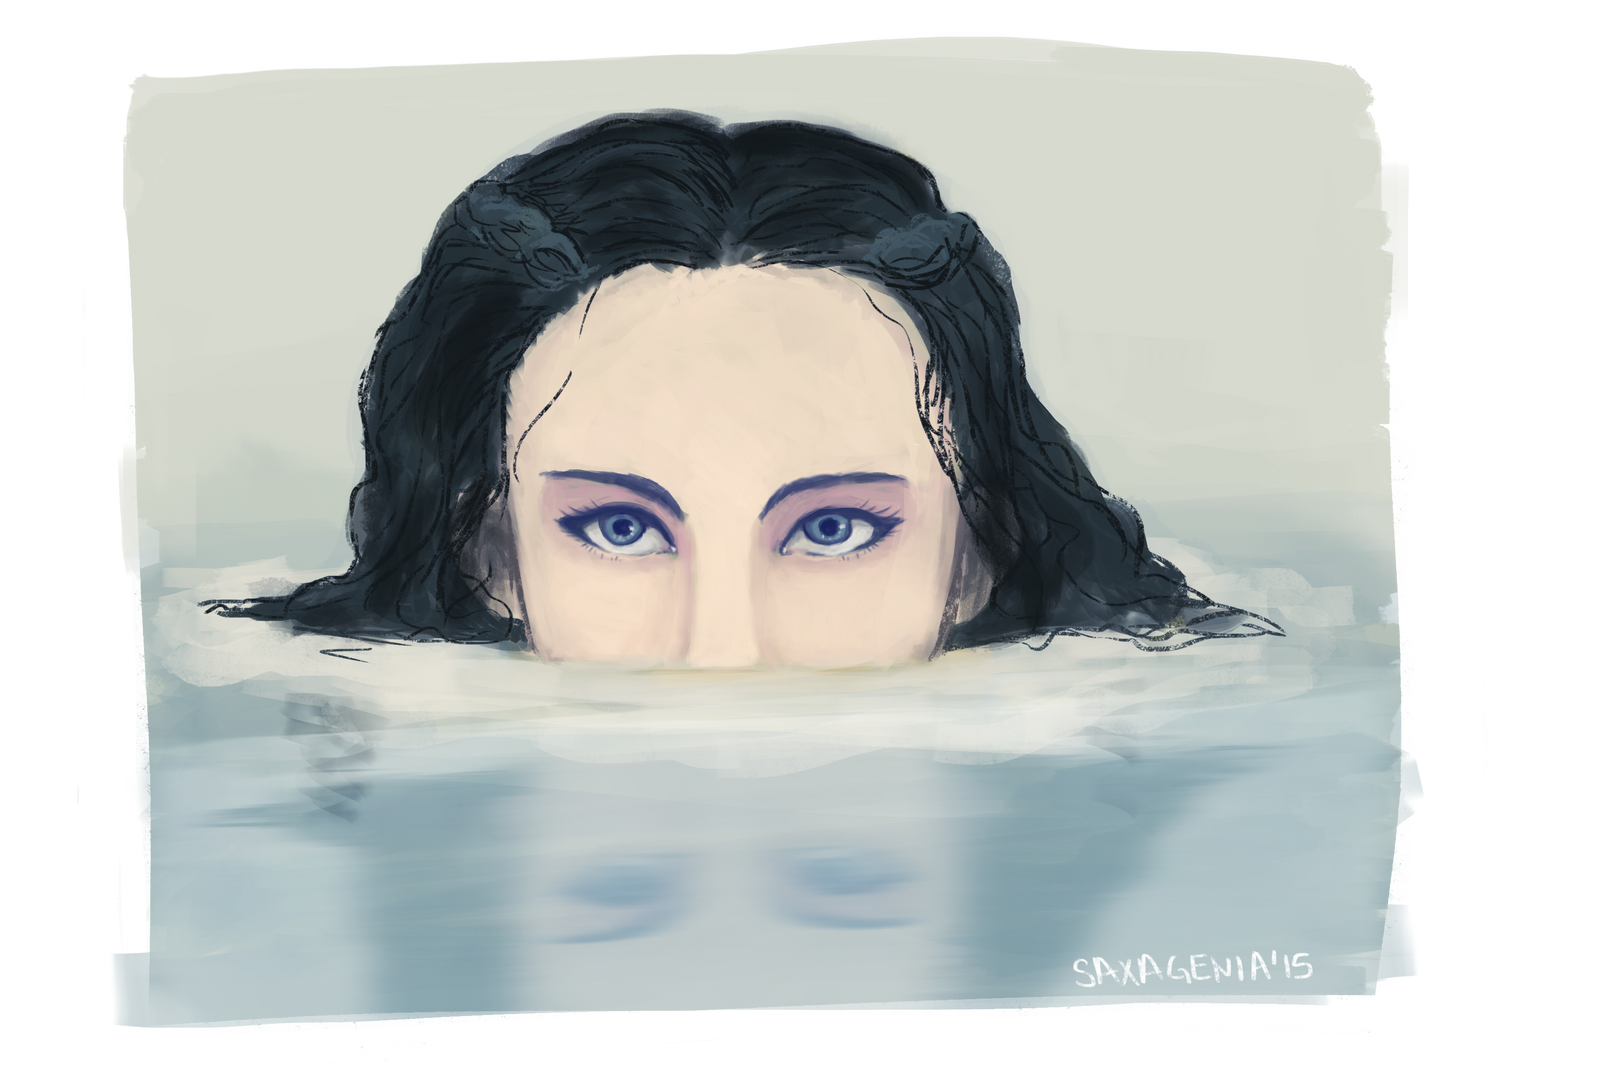 Lady in the Water by saxagenia